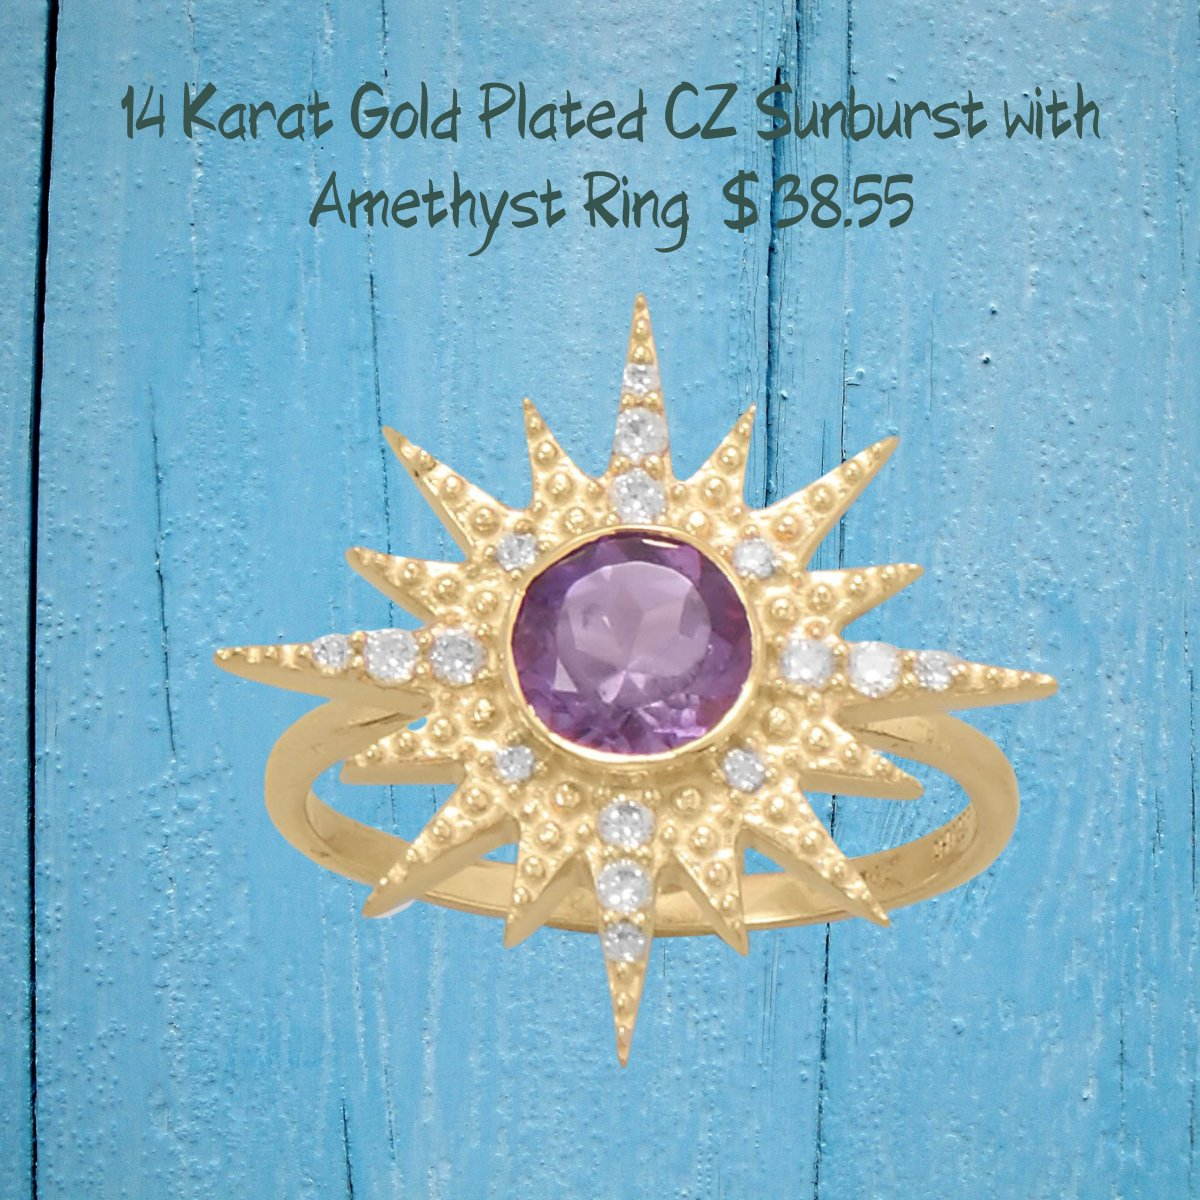 Sterling Silver 14 Karat Gold Plated CZ Sunburst with Amethyst Ring Size 5 to -9